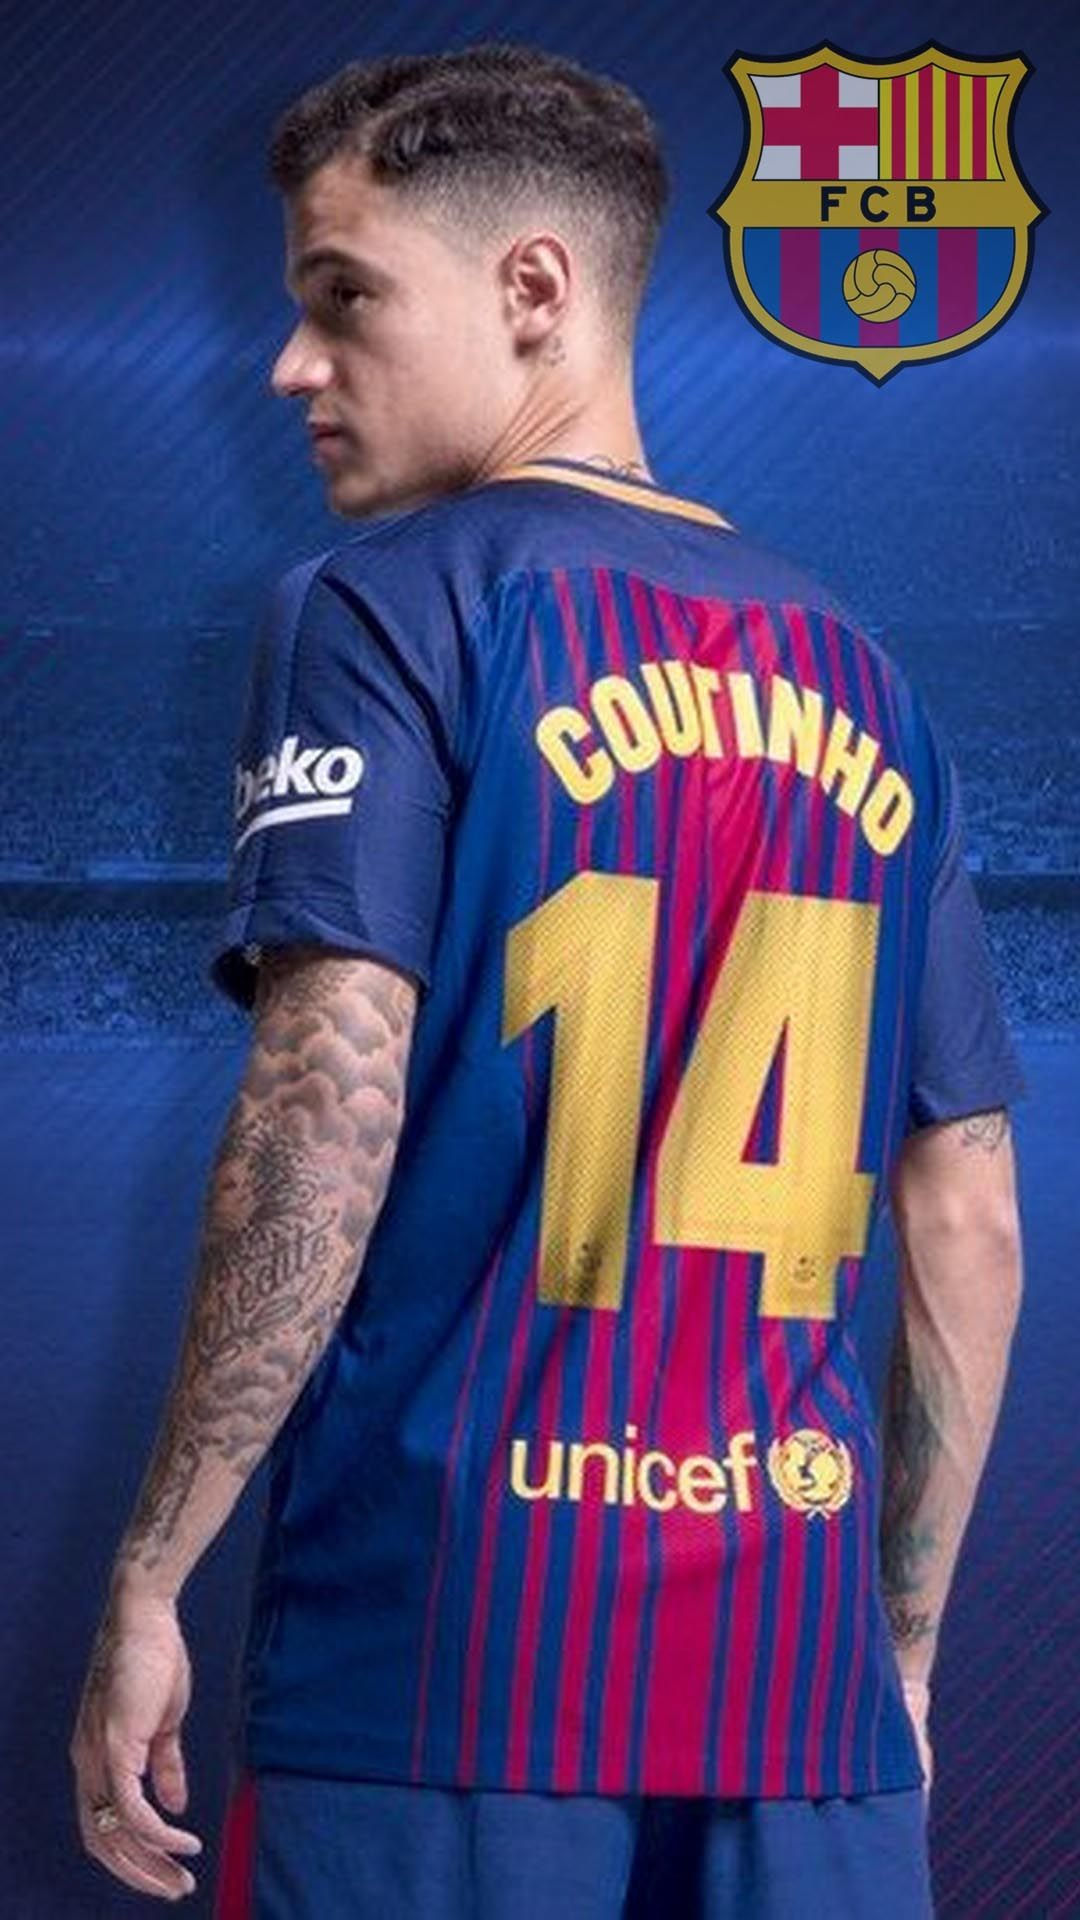 1080x1920 FC Barcelona Coutinho Android Wallpaper - Best Android Wallpapers